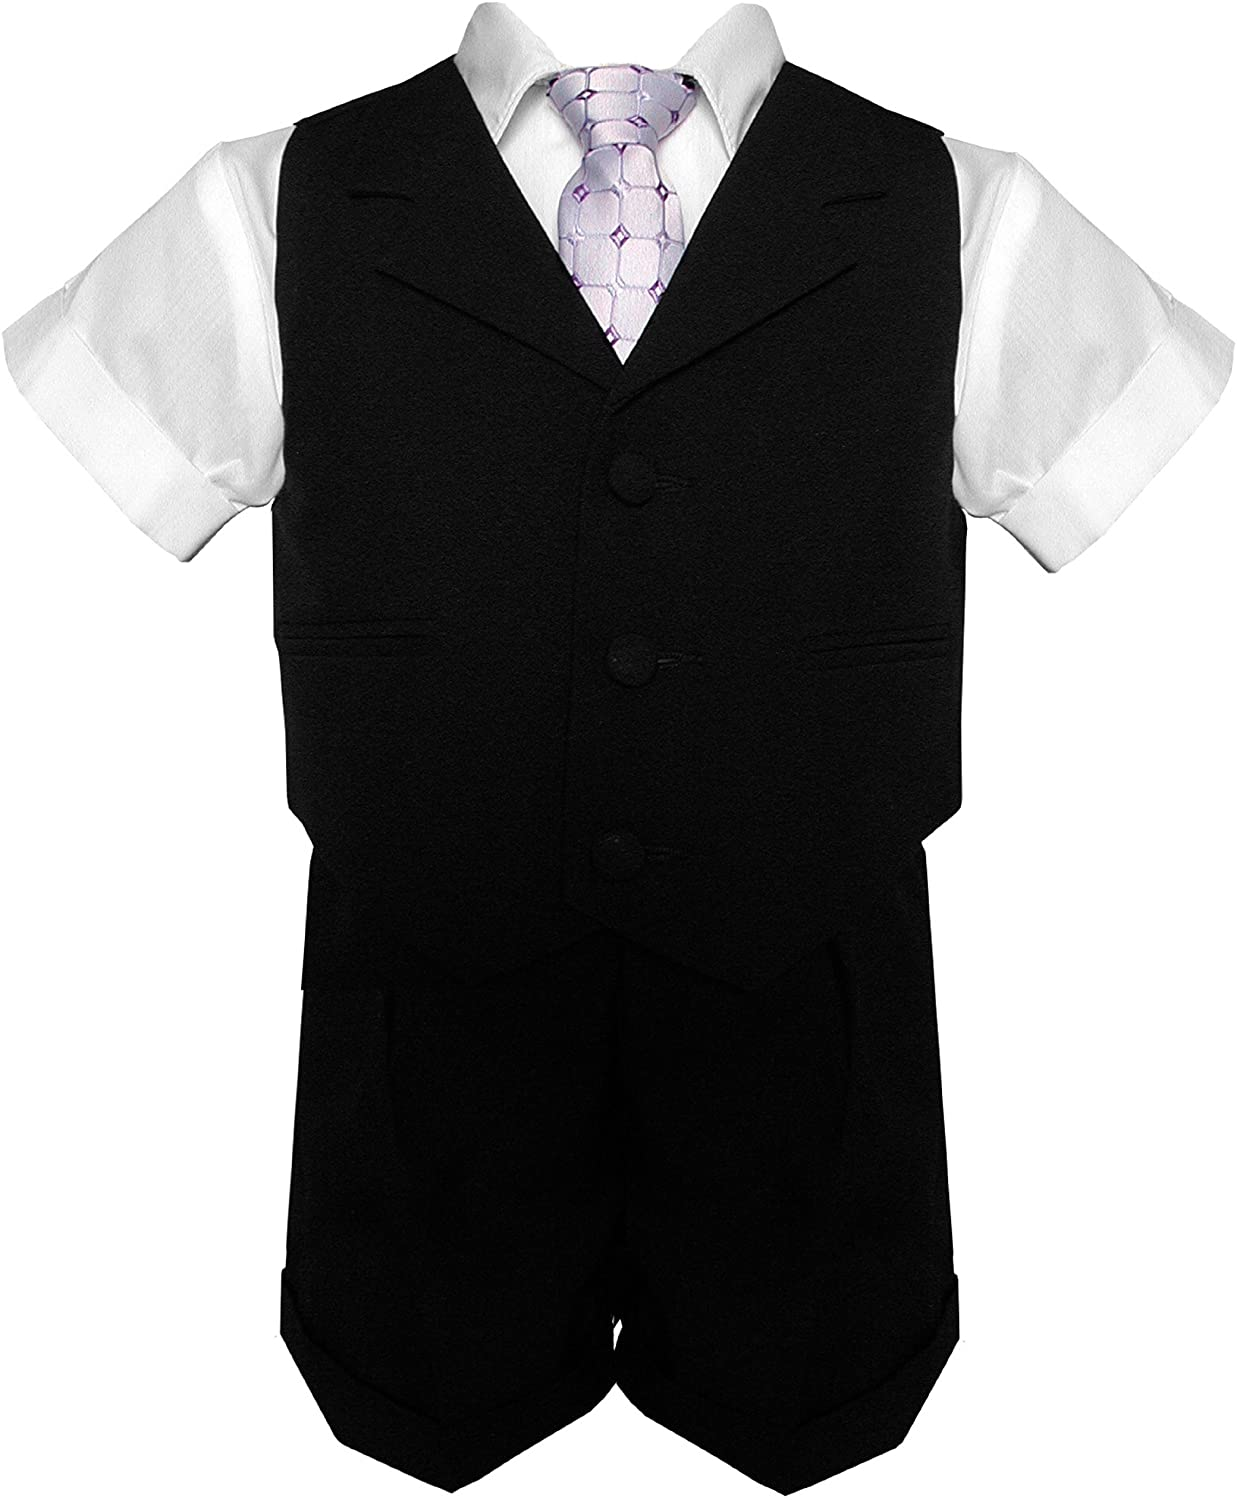 Gino Giovanni Baby and Toddler Boy Summer Suit Black Short Set